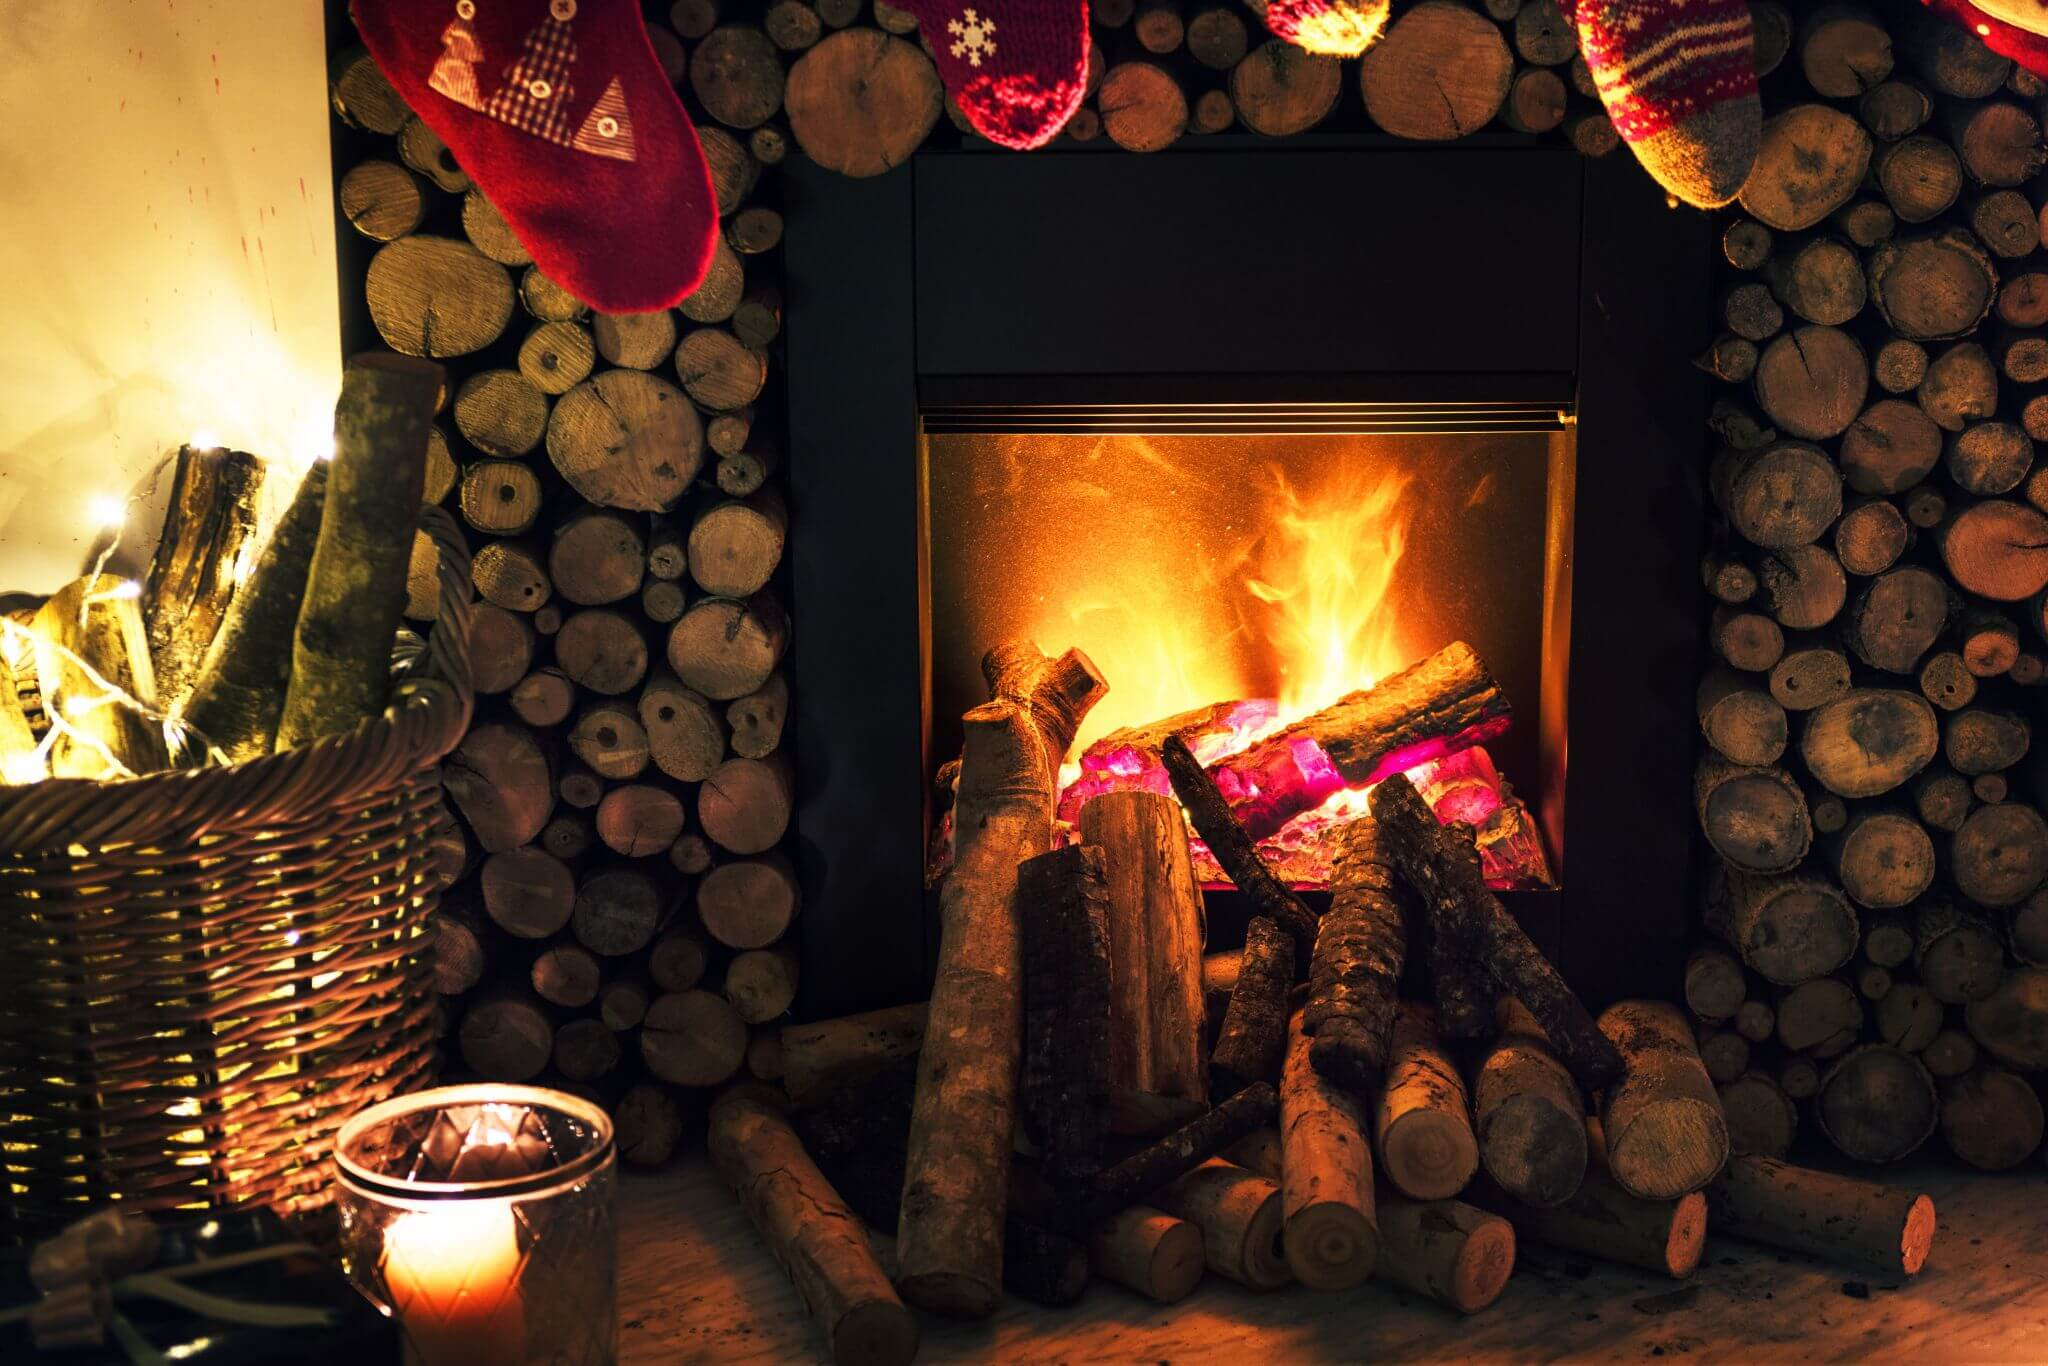 carbon monoxide awareness - do you know the risks - wood stacked up around an open fire place